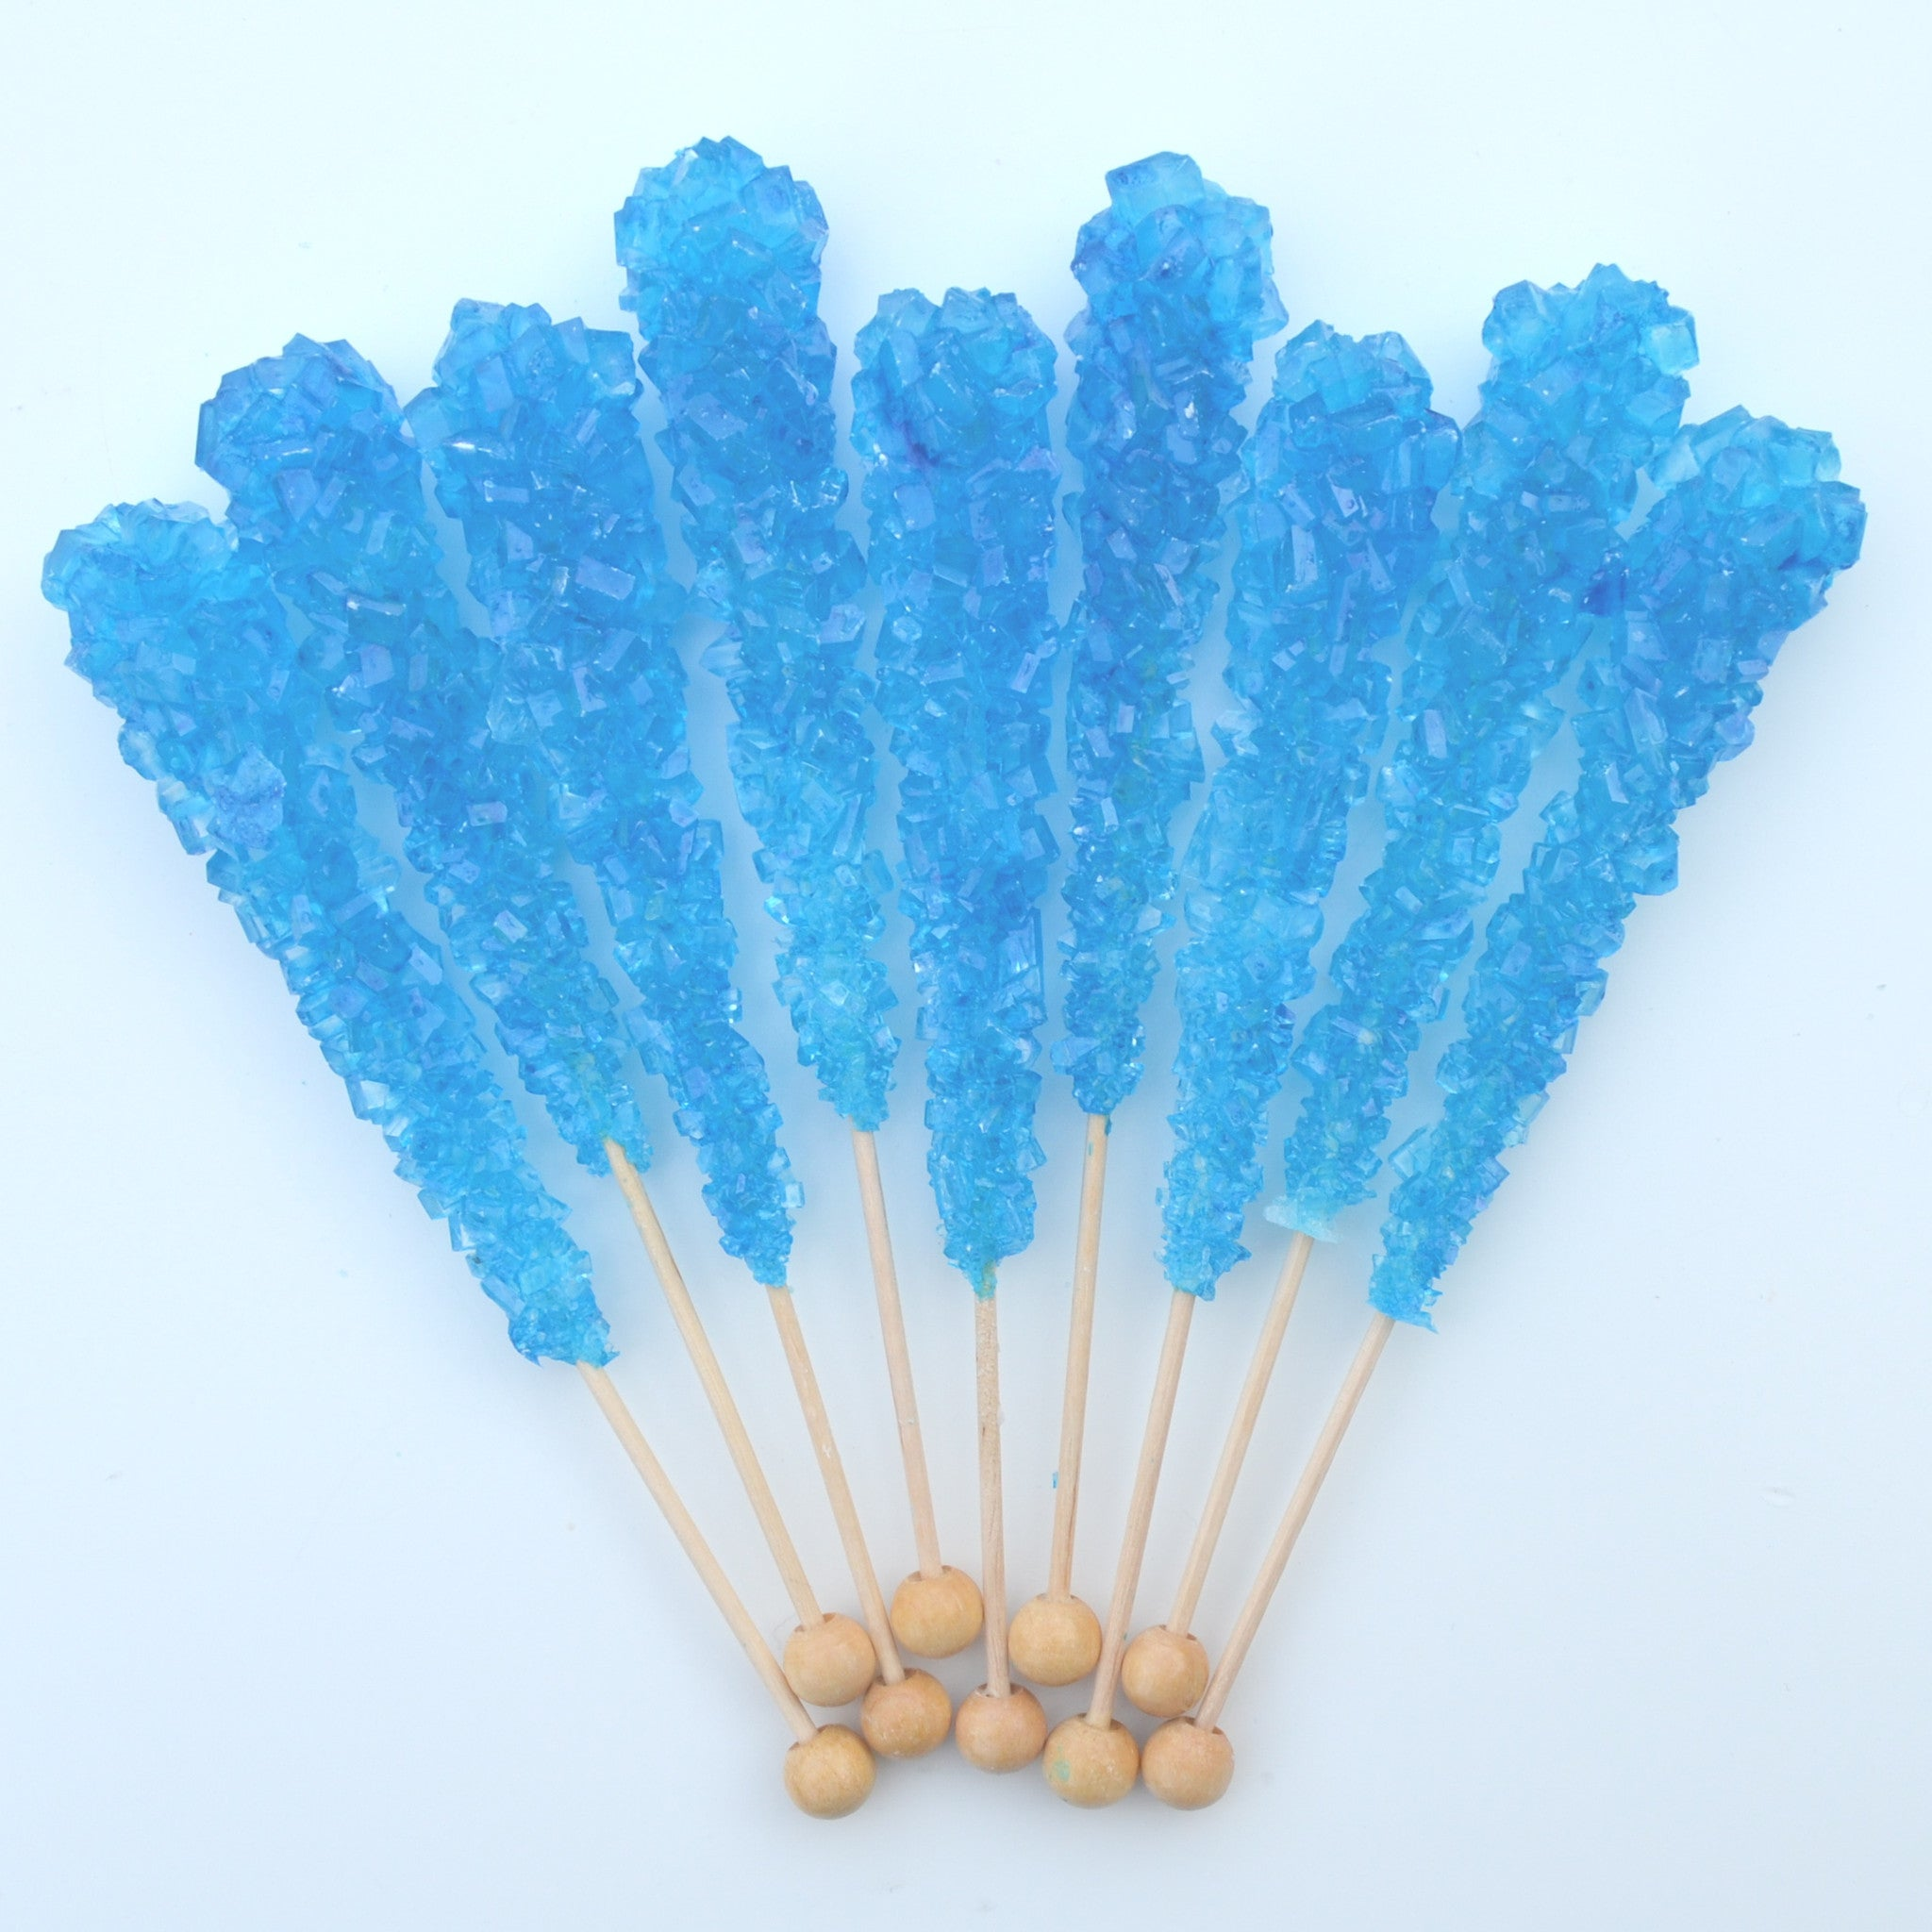 Blue Raspberry Sugar Swizzle Sticks 10 Pack - The Sweet Hostess